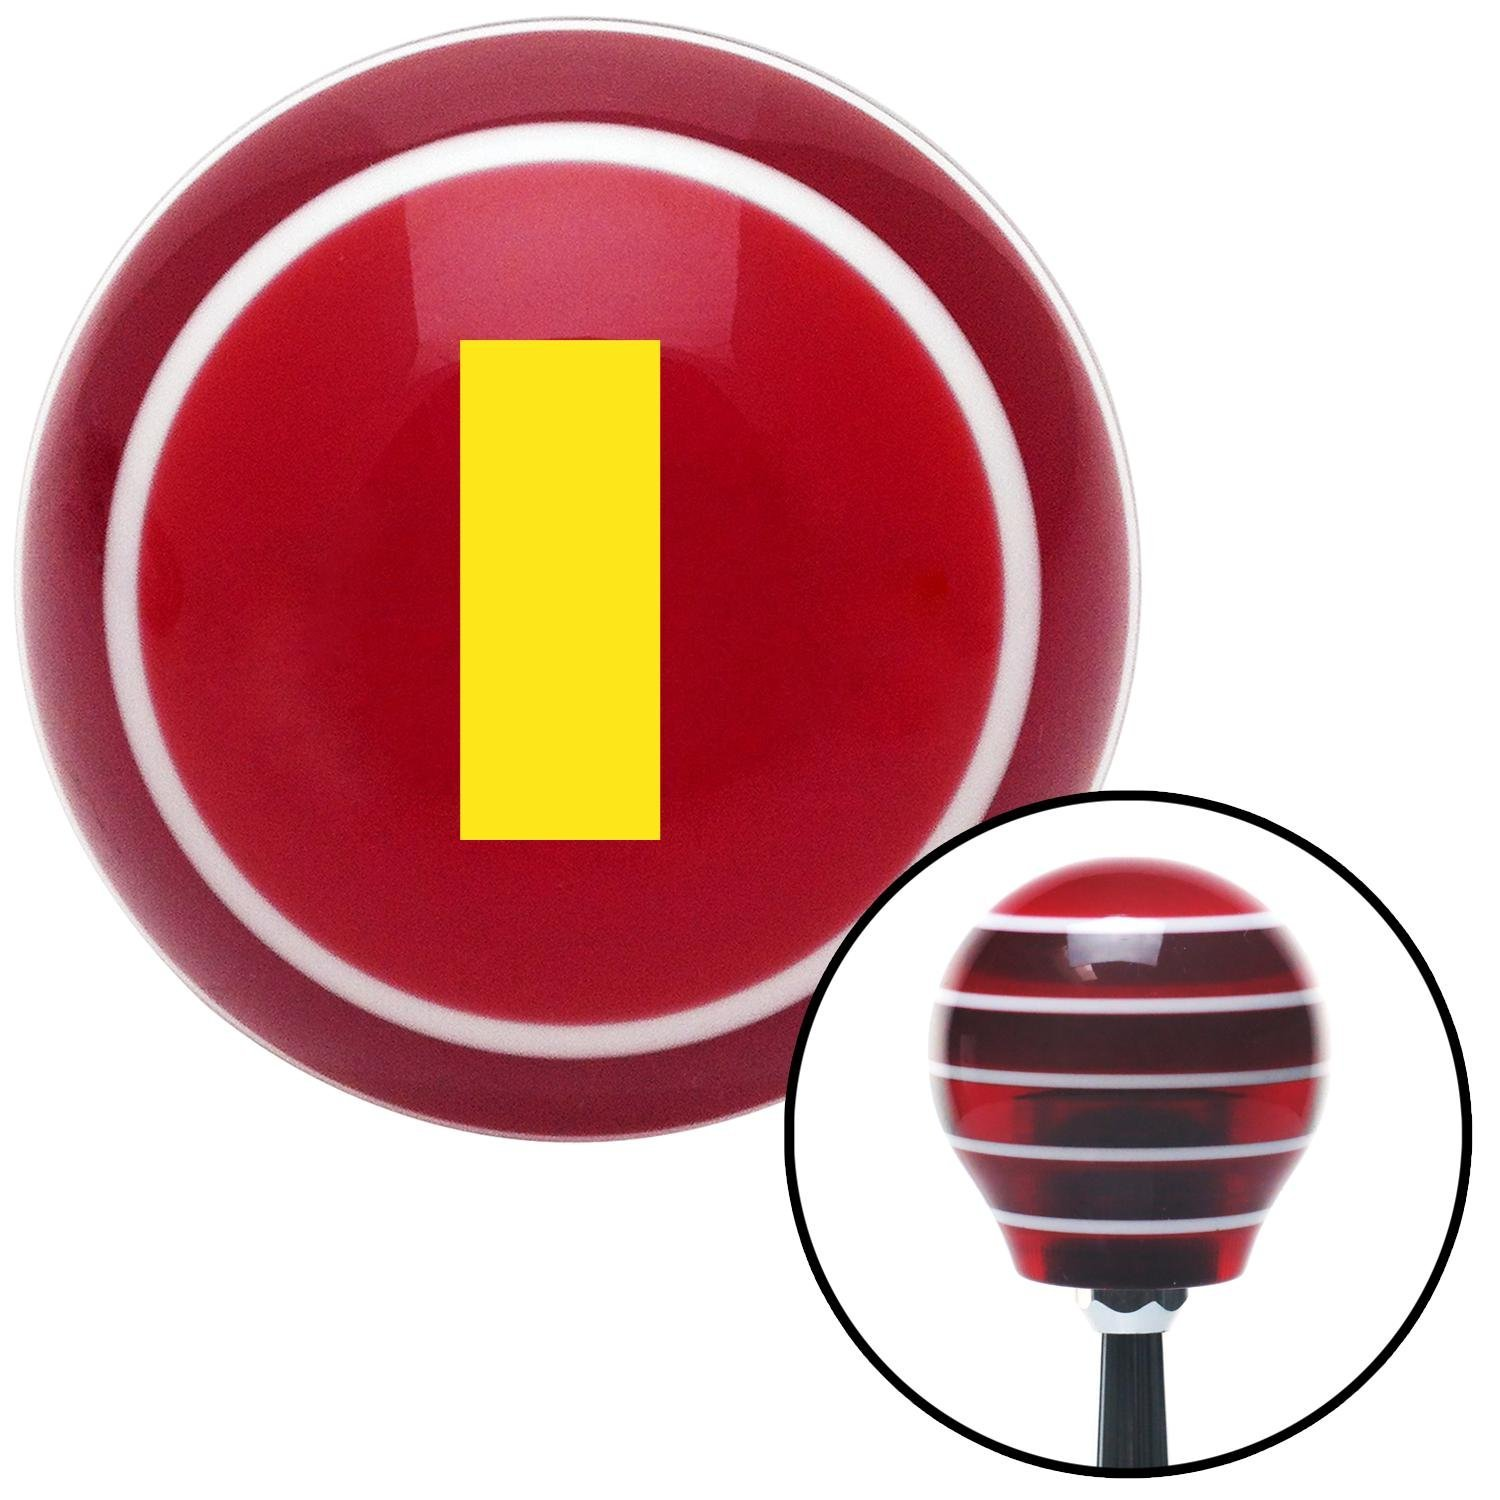 American Shifter 110426 Black Shift Knob with M16 x 1.5 Insert Yellow FTW!